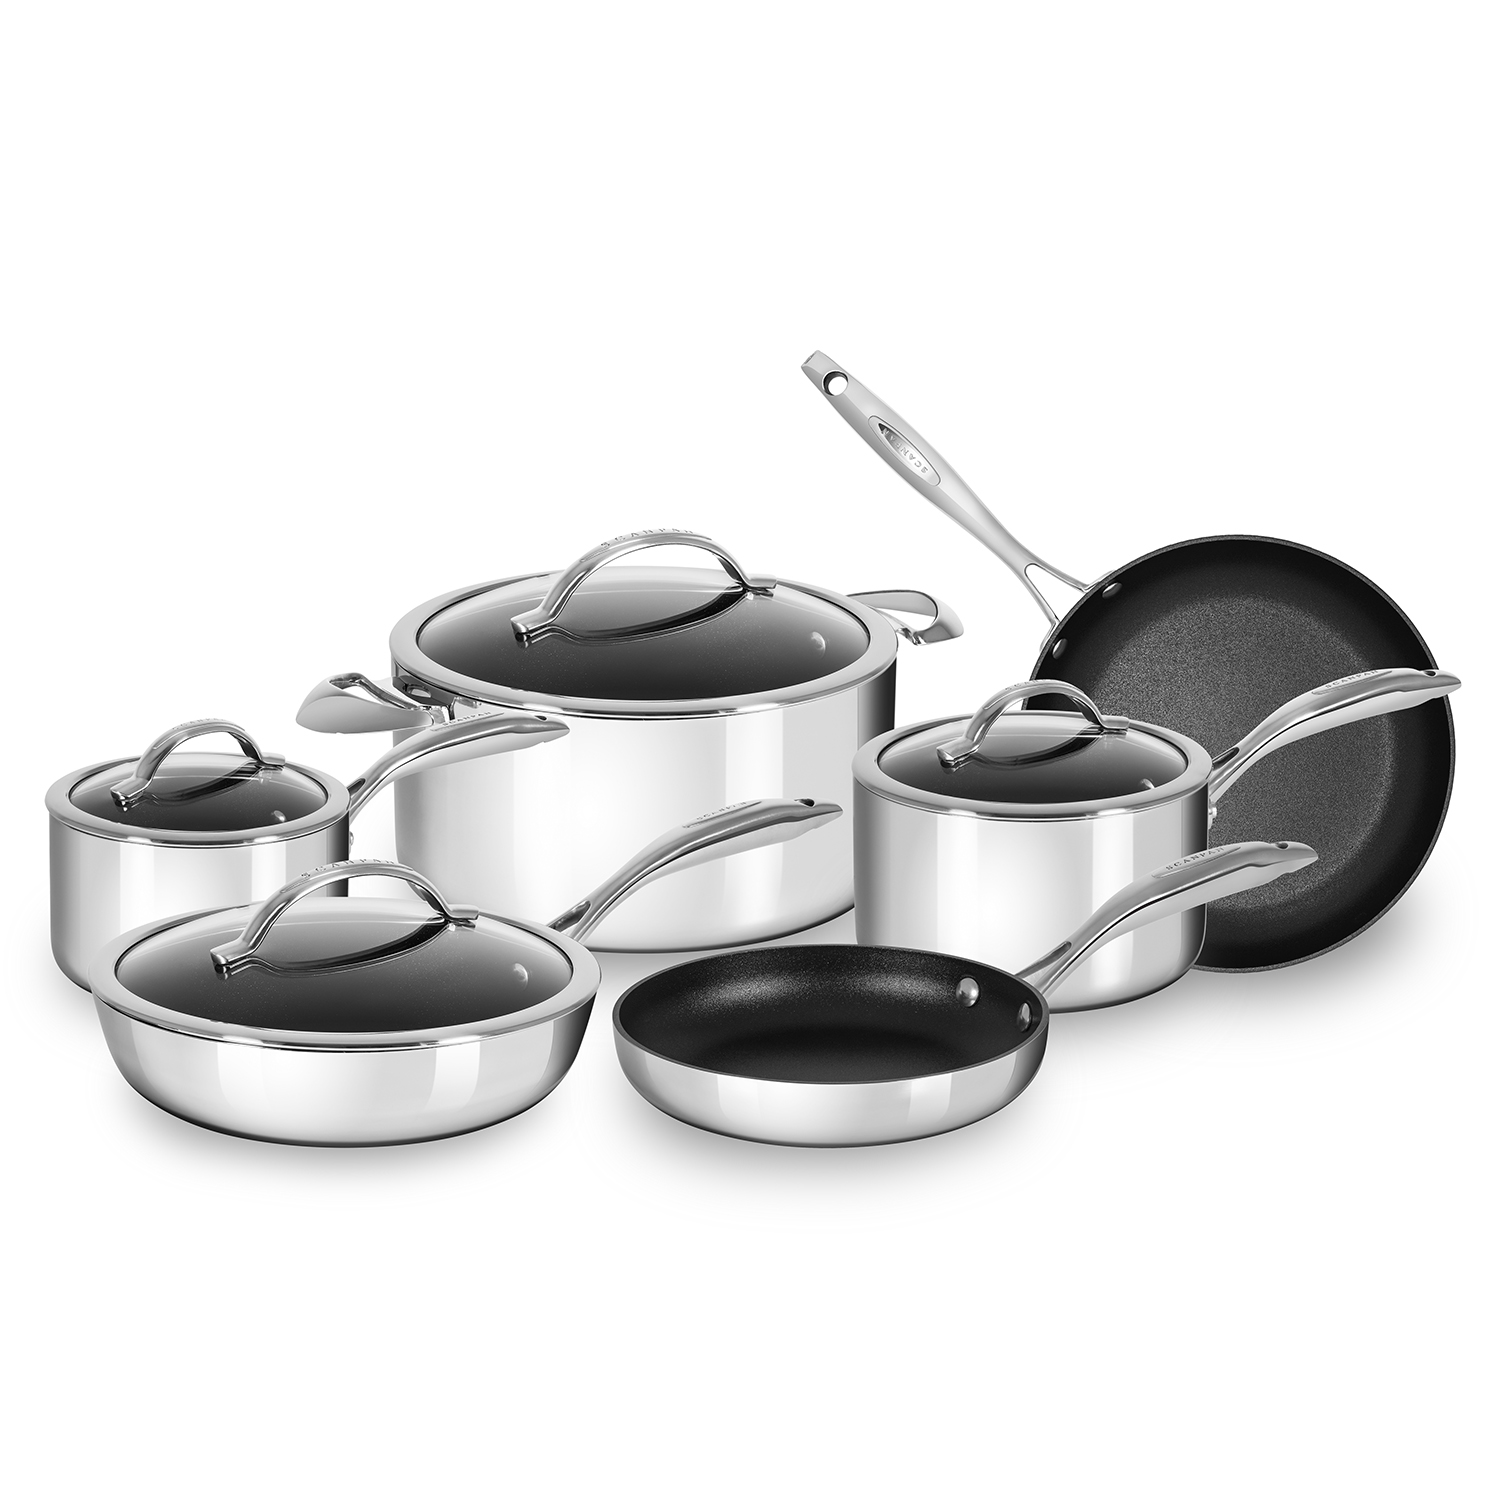 Scanpan 10-piece cookware set for a fraction of the price